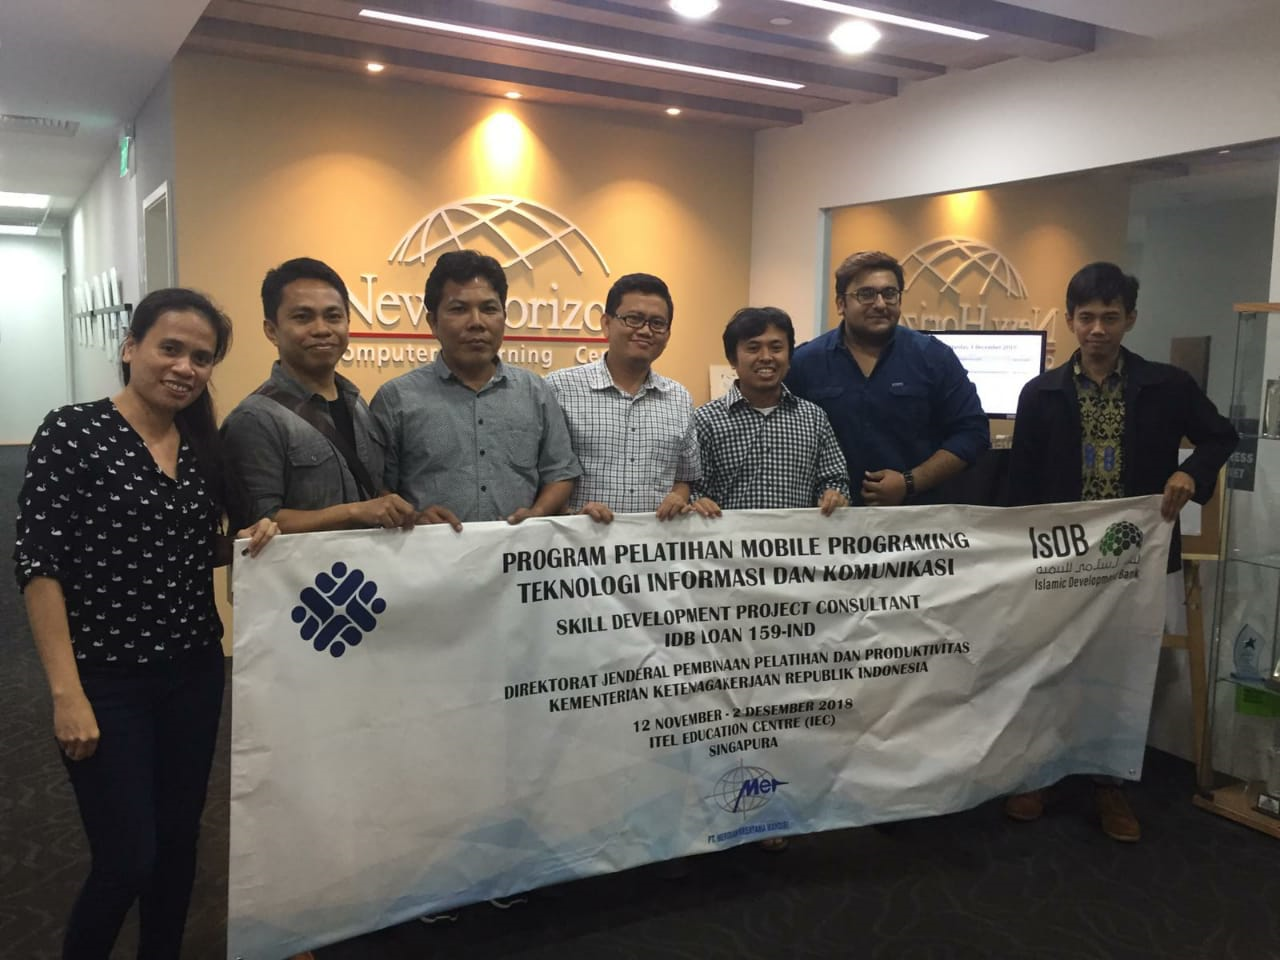 Pelatihan Mobile Programming  di New Horizons Computer Learning Center, Singapura